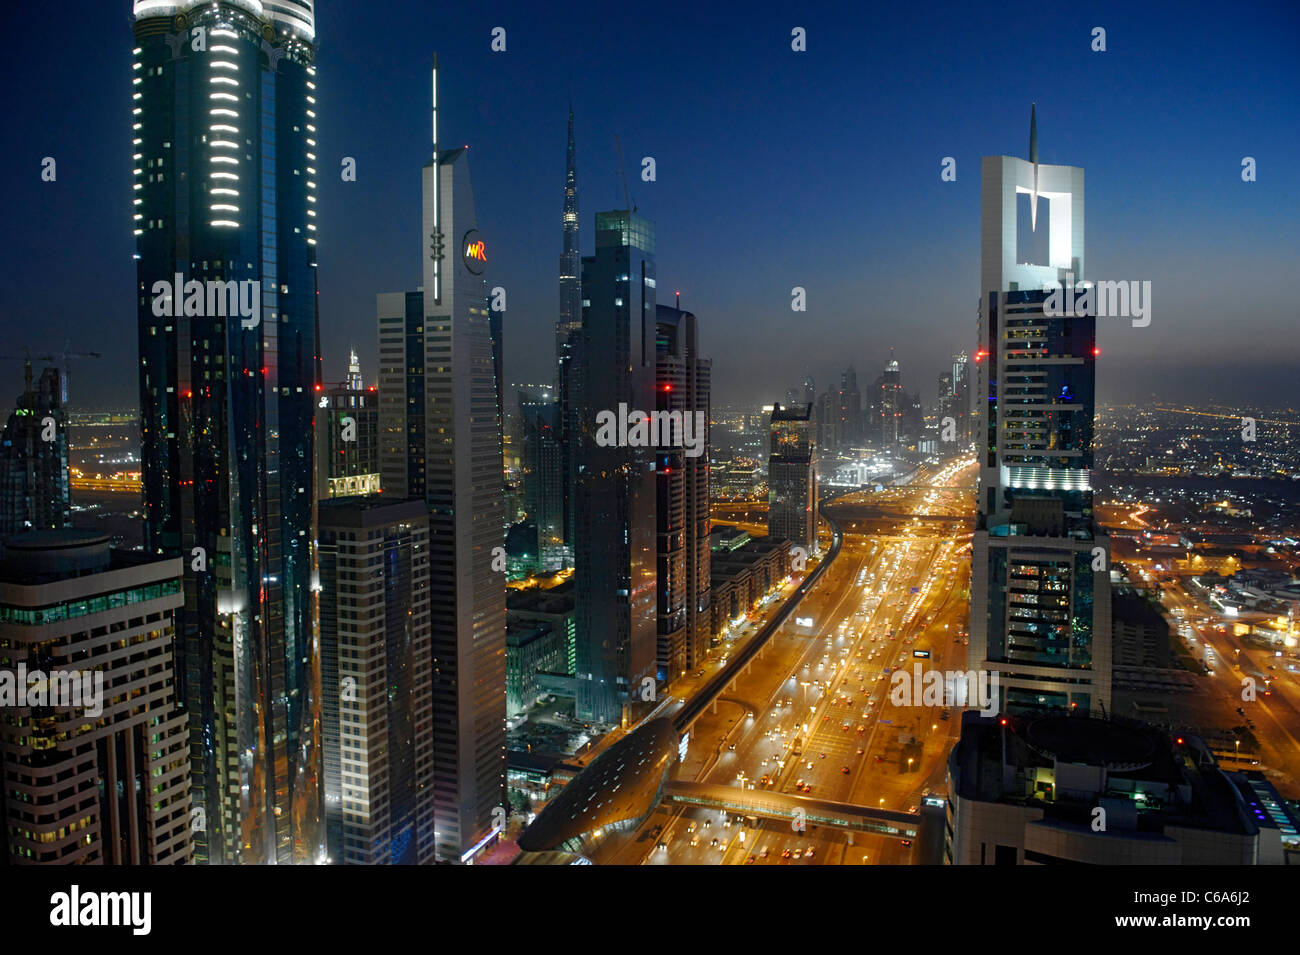 Evening at the Persian Gulf, traffic, city, downtown Dubai, Dubai, United Arab Emirates, Middle East Stock Photo